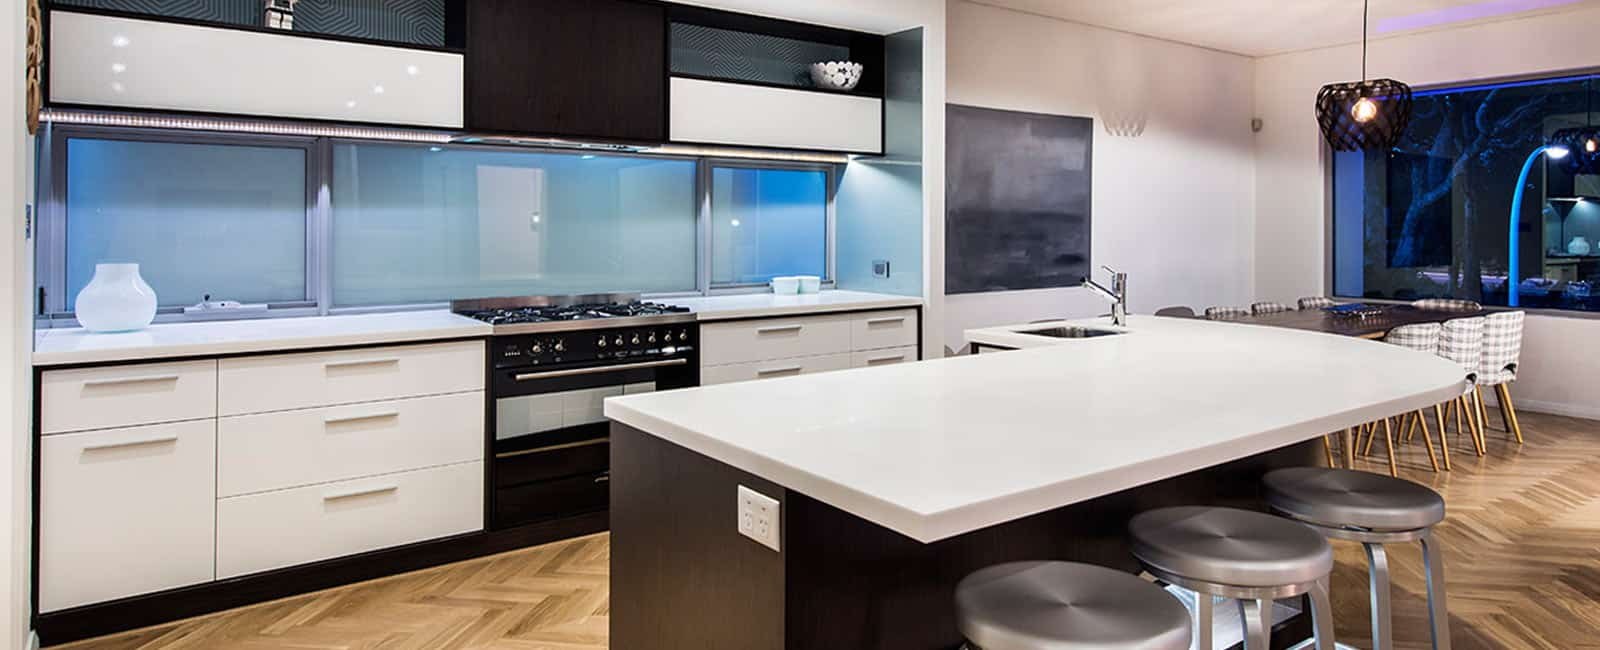 Kitchens Perth Kitchen Design Renovations Kitchen Kitchen Designer Perth